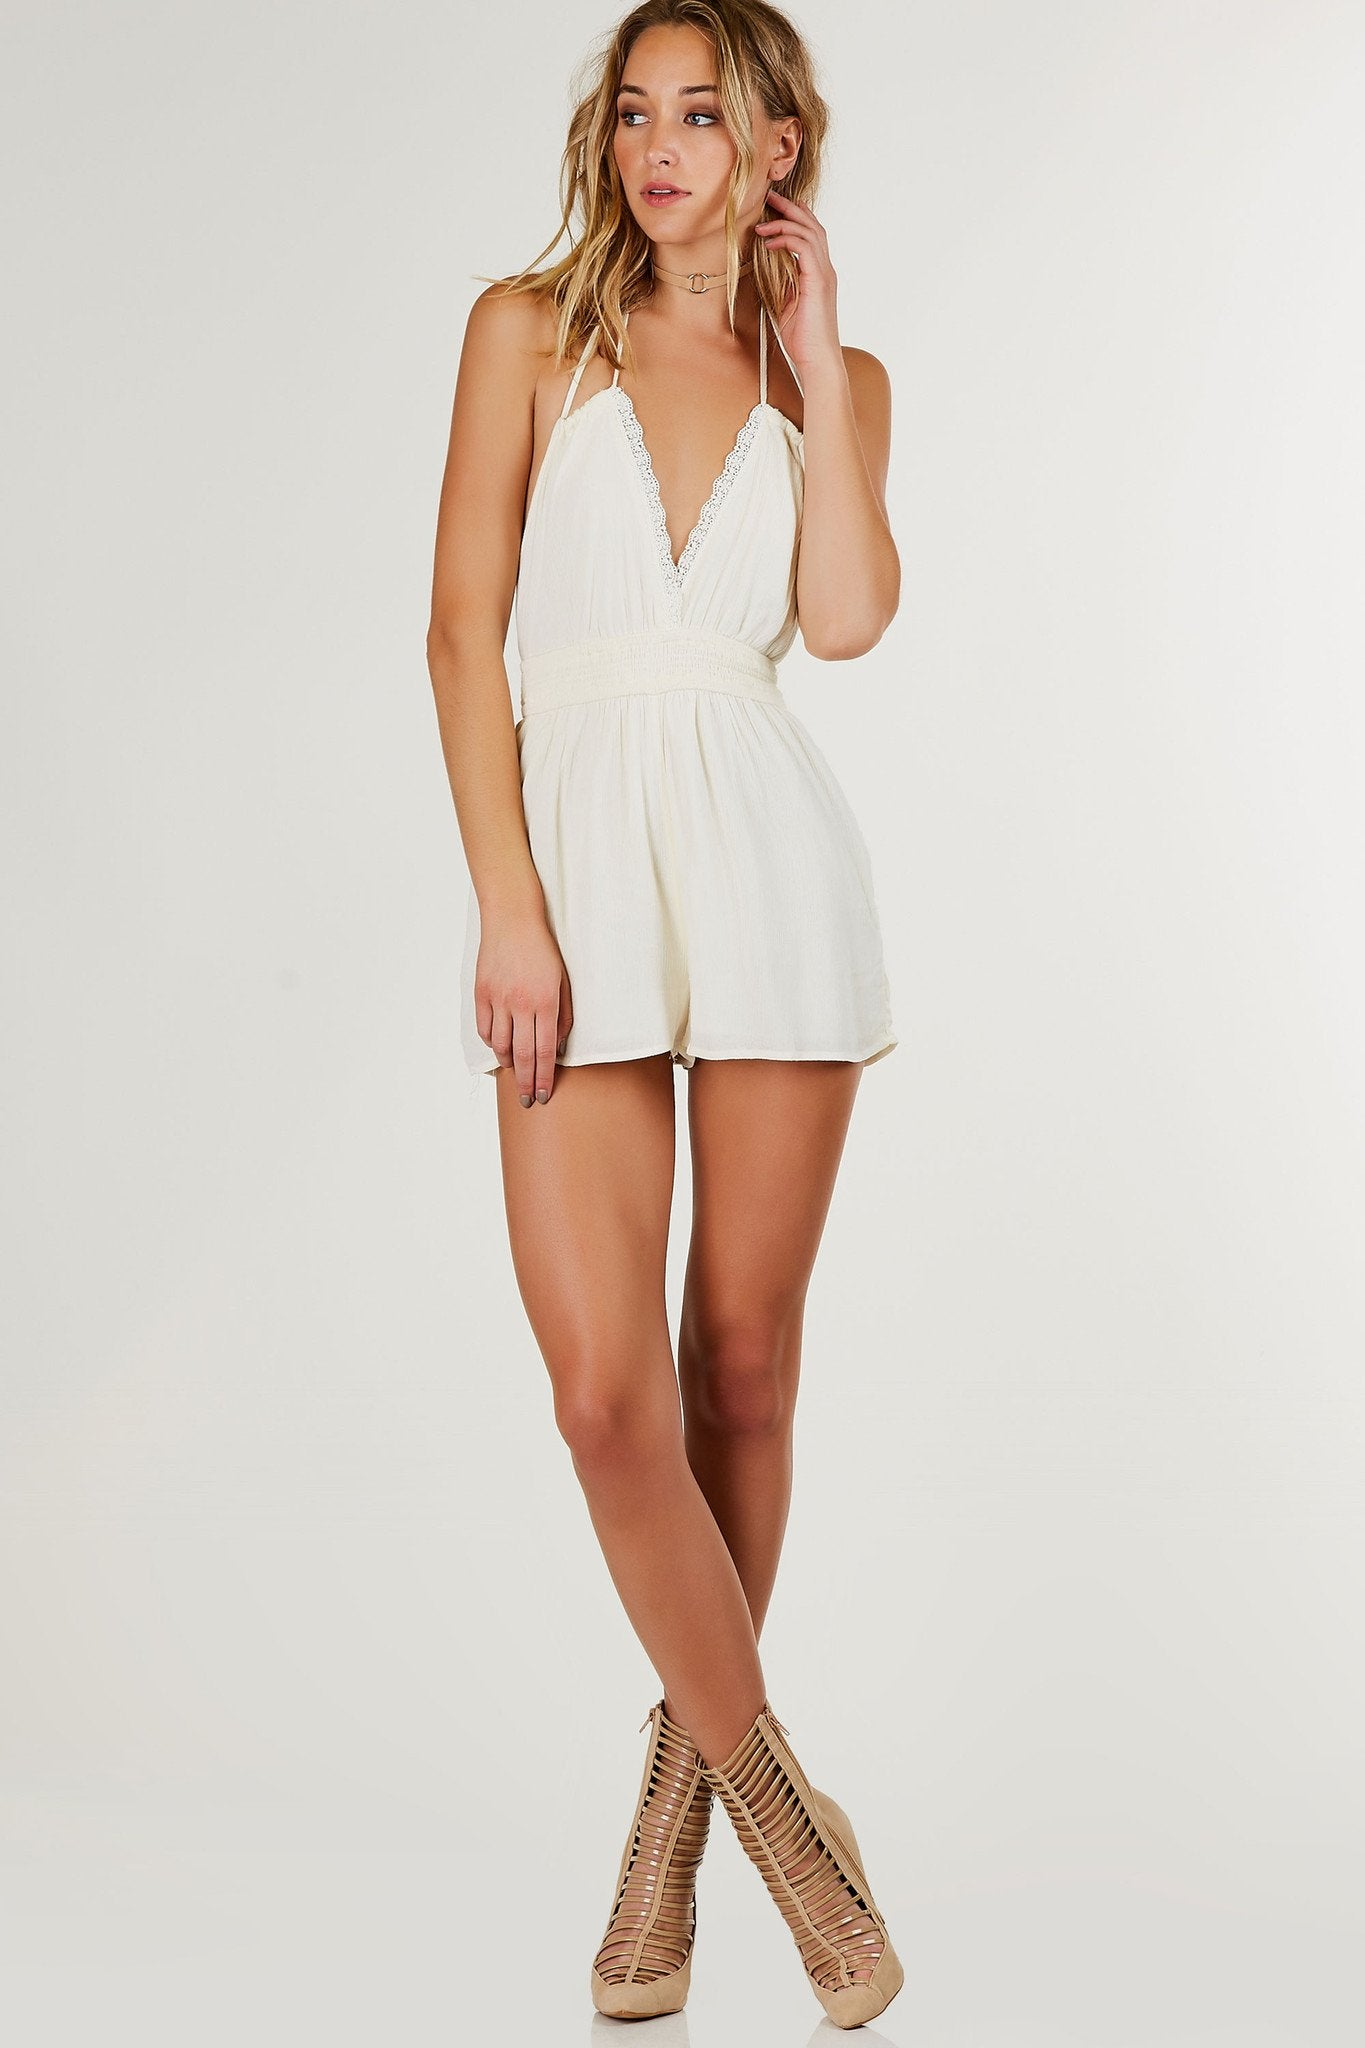 Sleeveless halter romper with adorable crochet trim at V-neckline. Gauze material with flared hem and full lining.